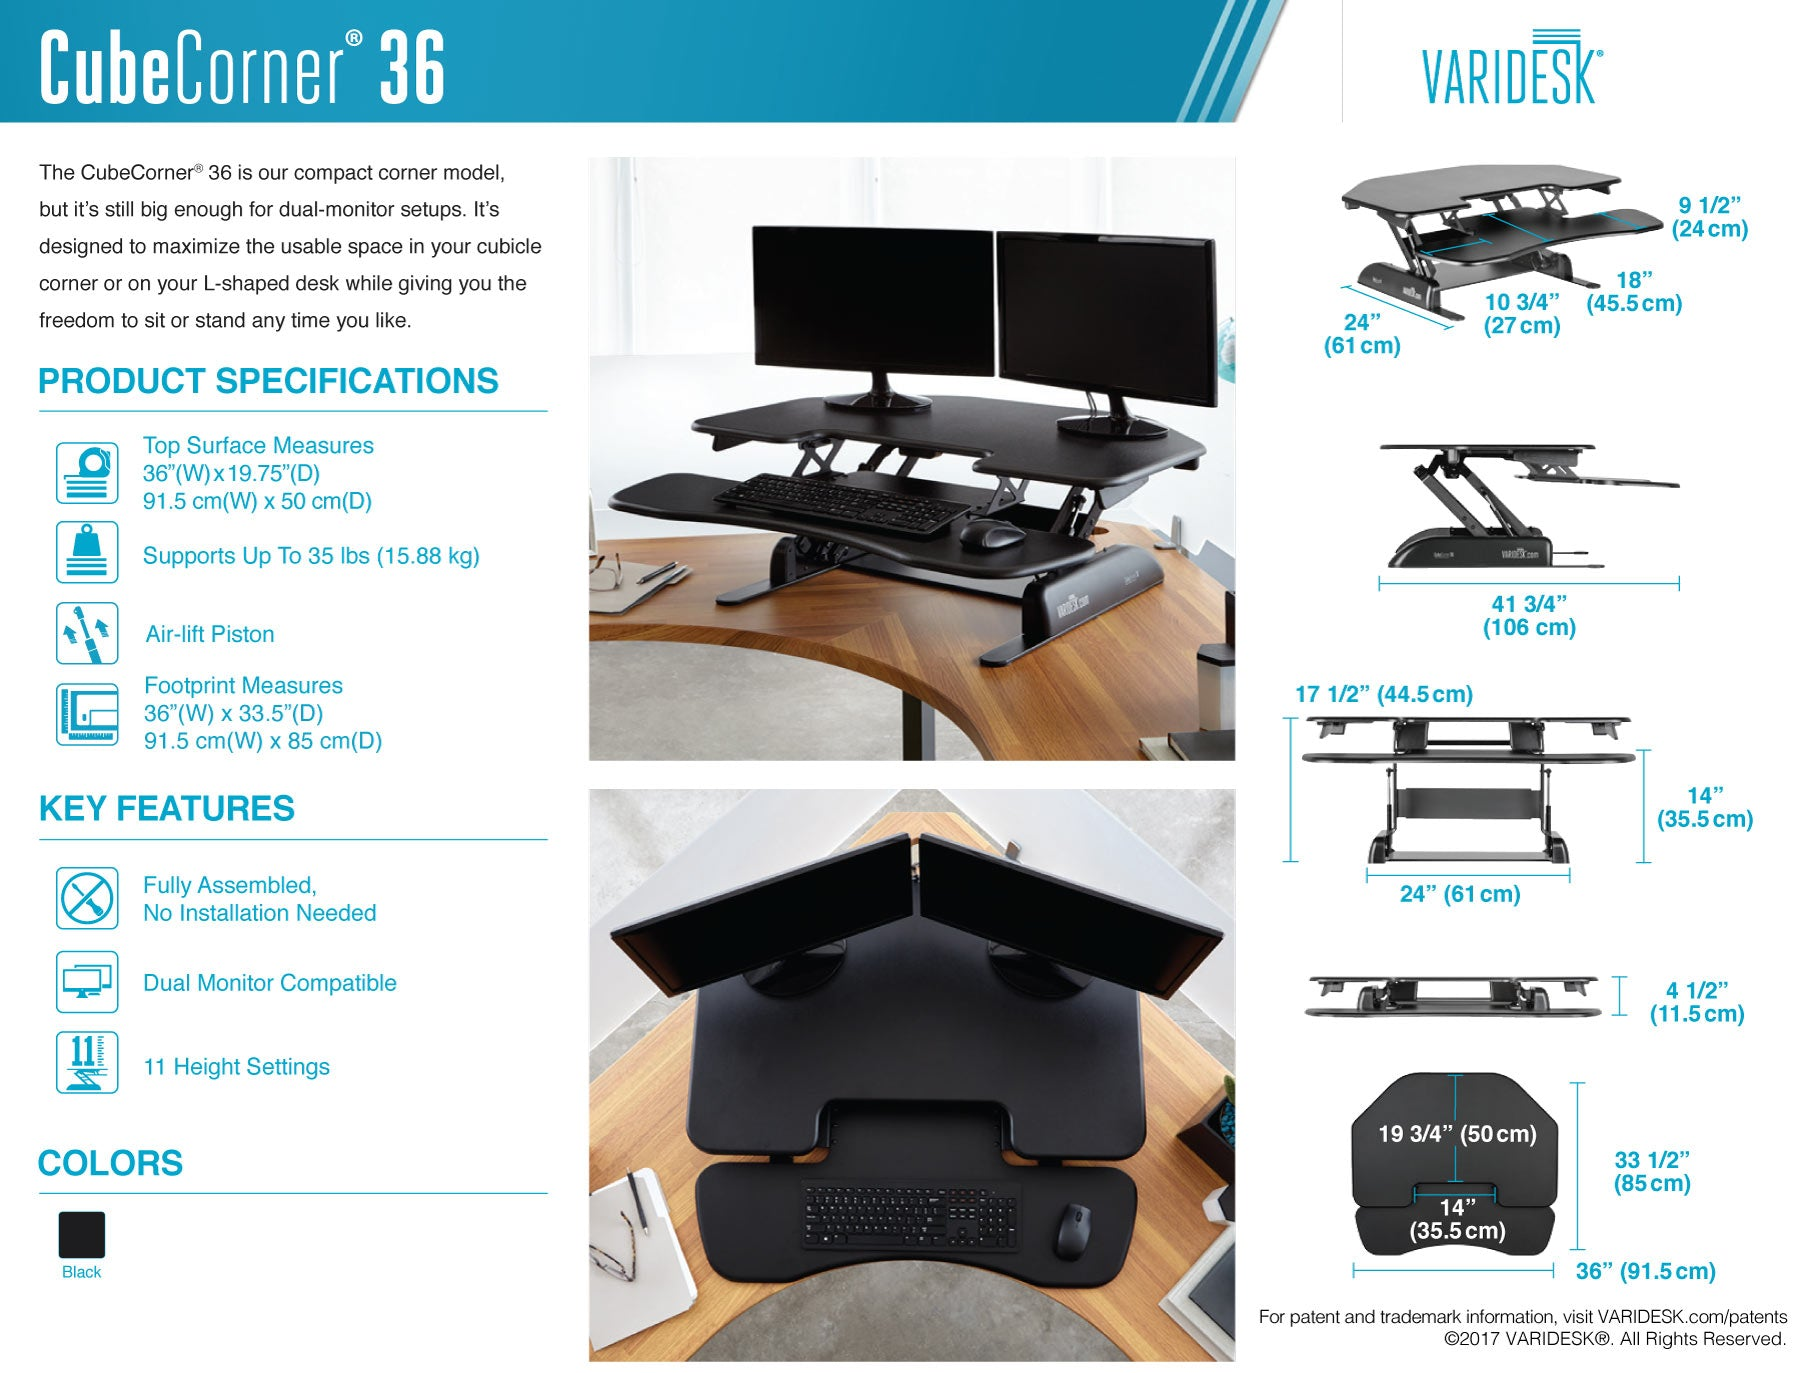 varidesk-cube-corner-36-technical-specifications